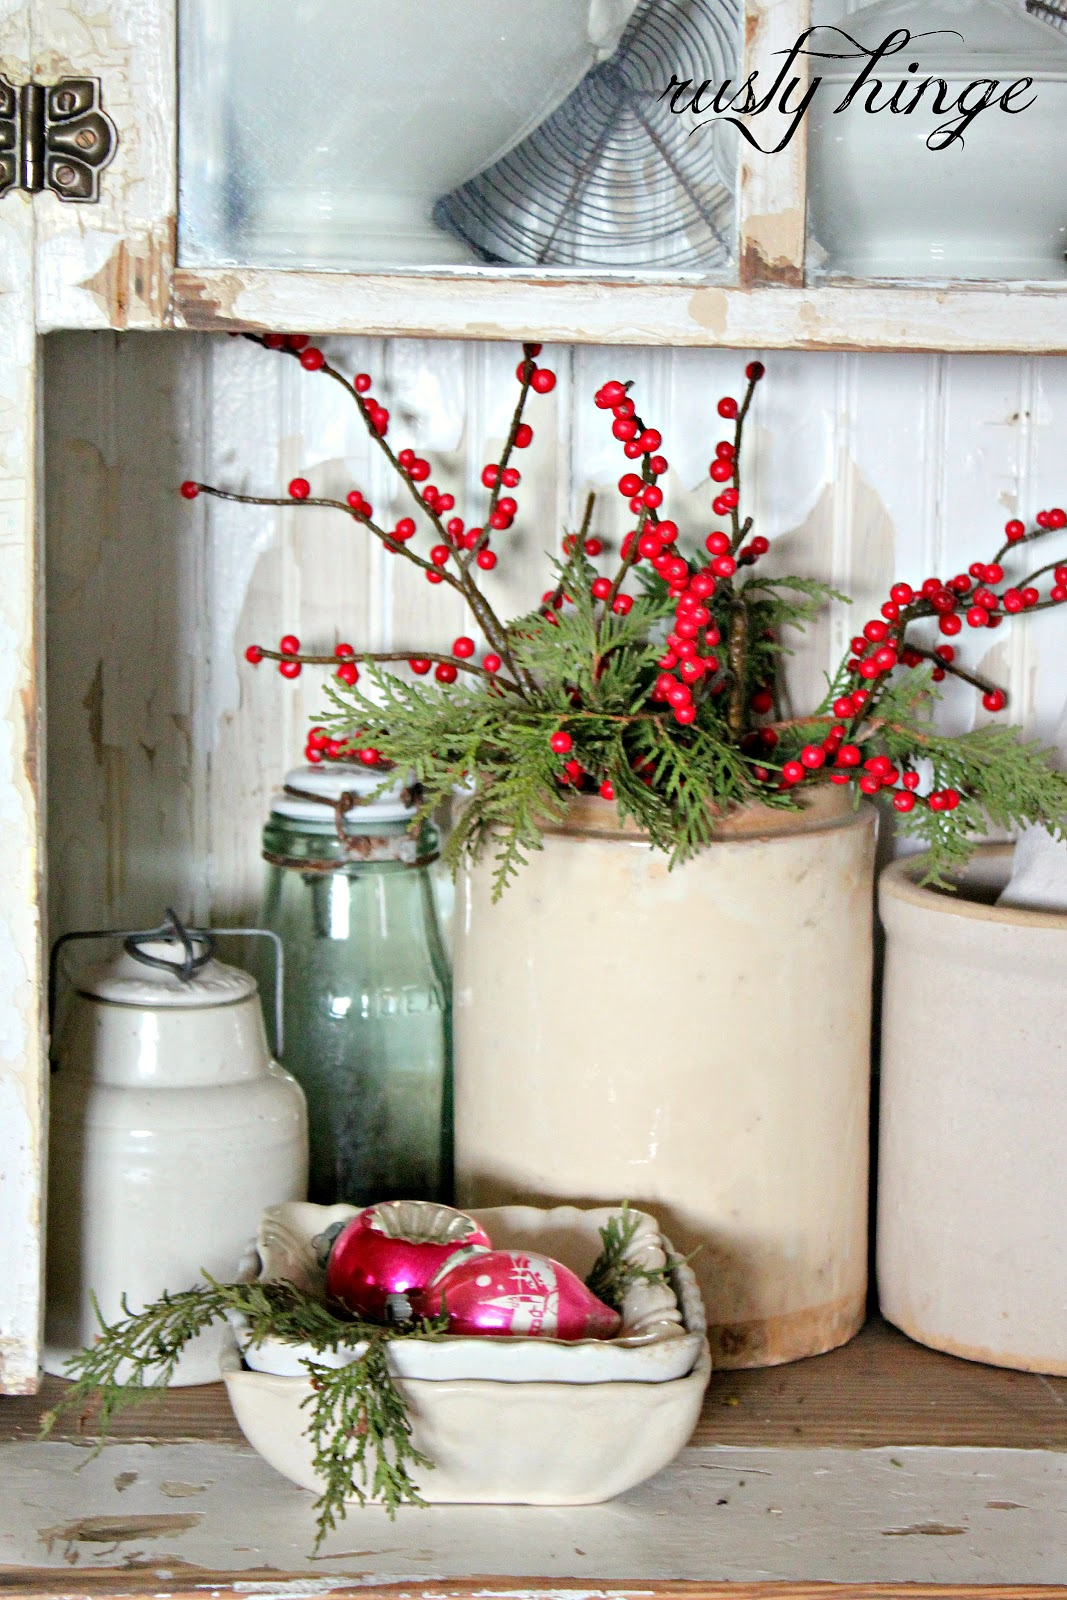 Kitchen Christmas Decorating Ideas: We Wish You A Merry Christmas!